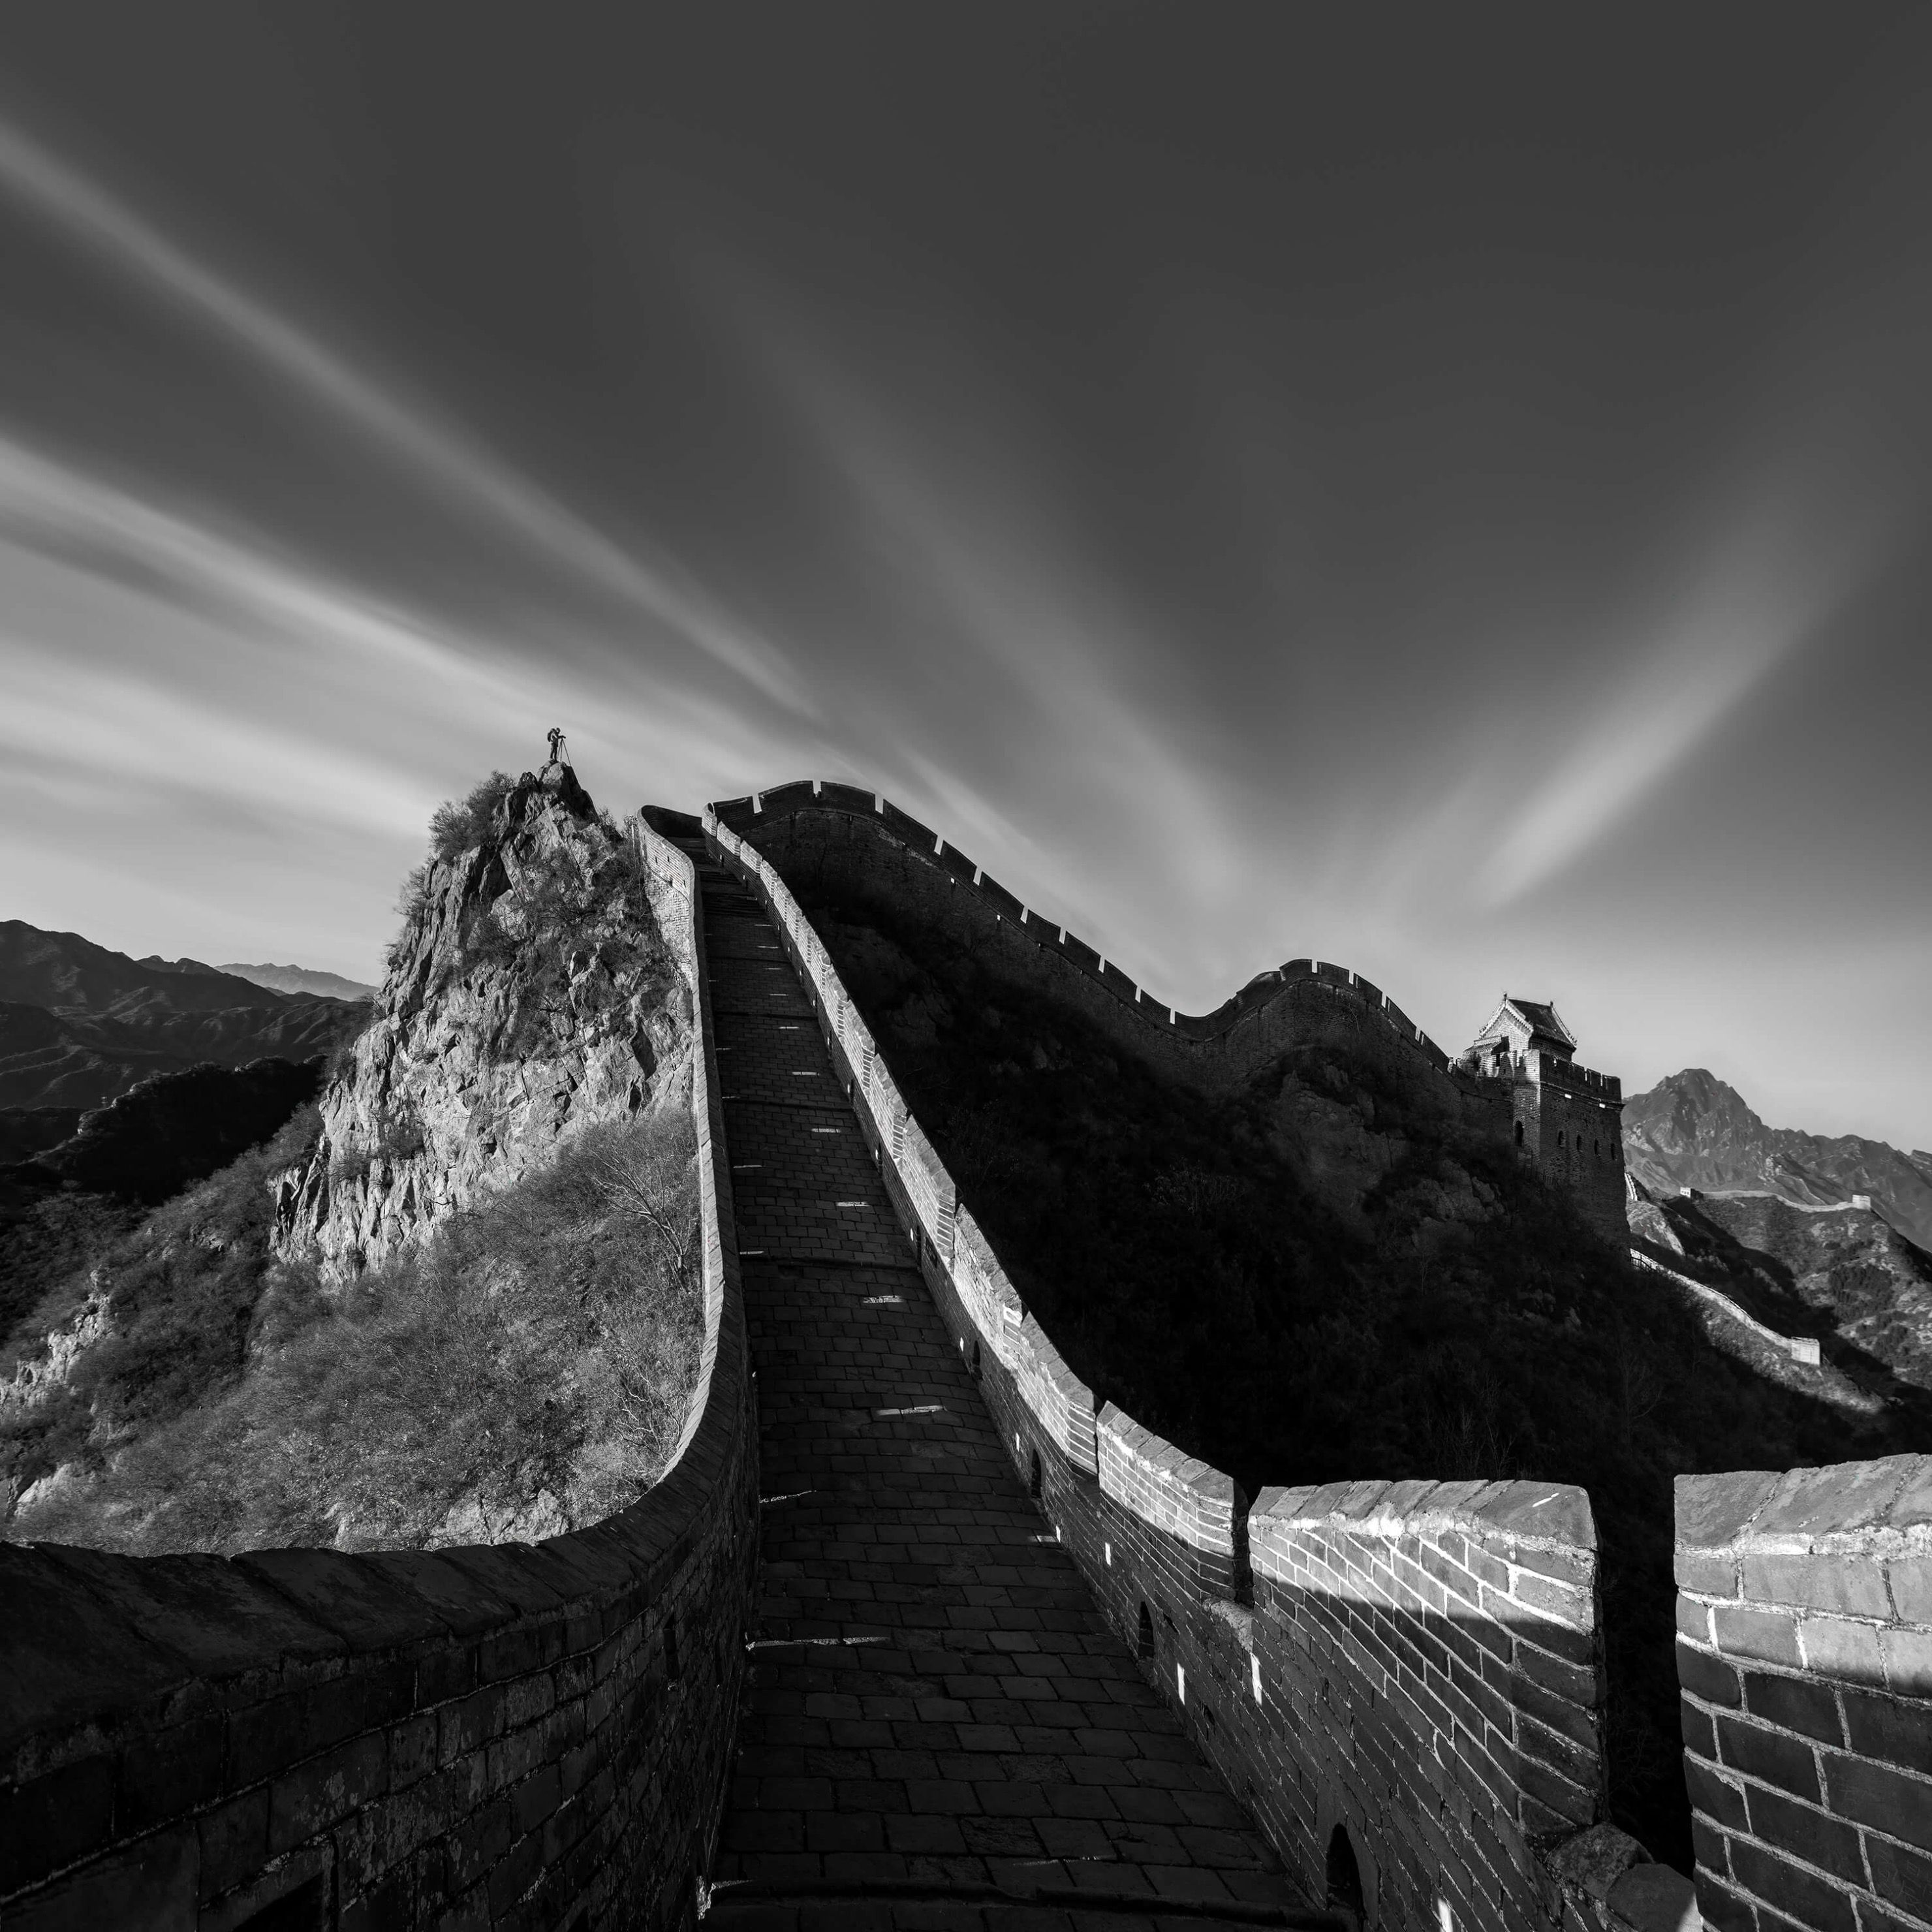 Photographing the Great Wall